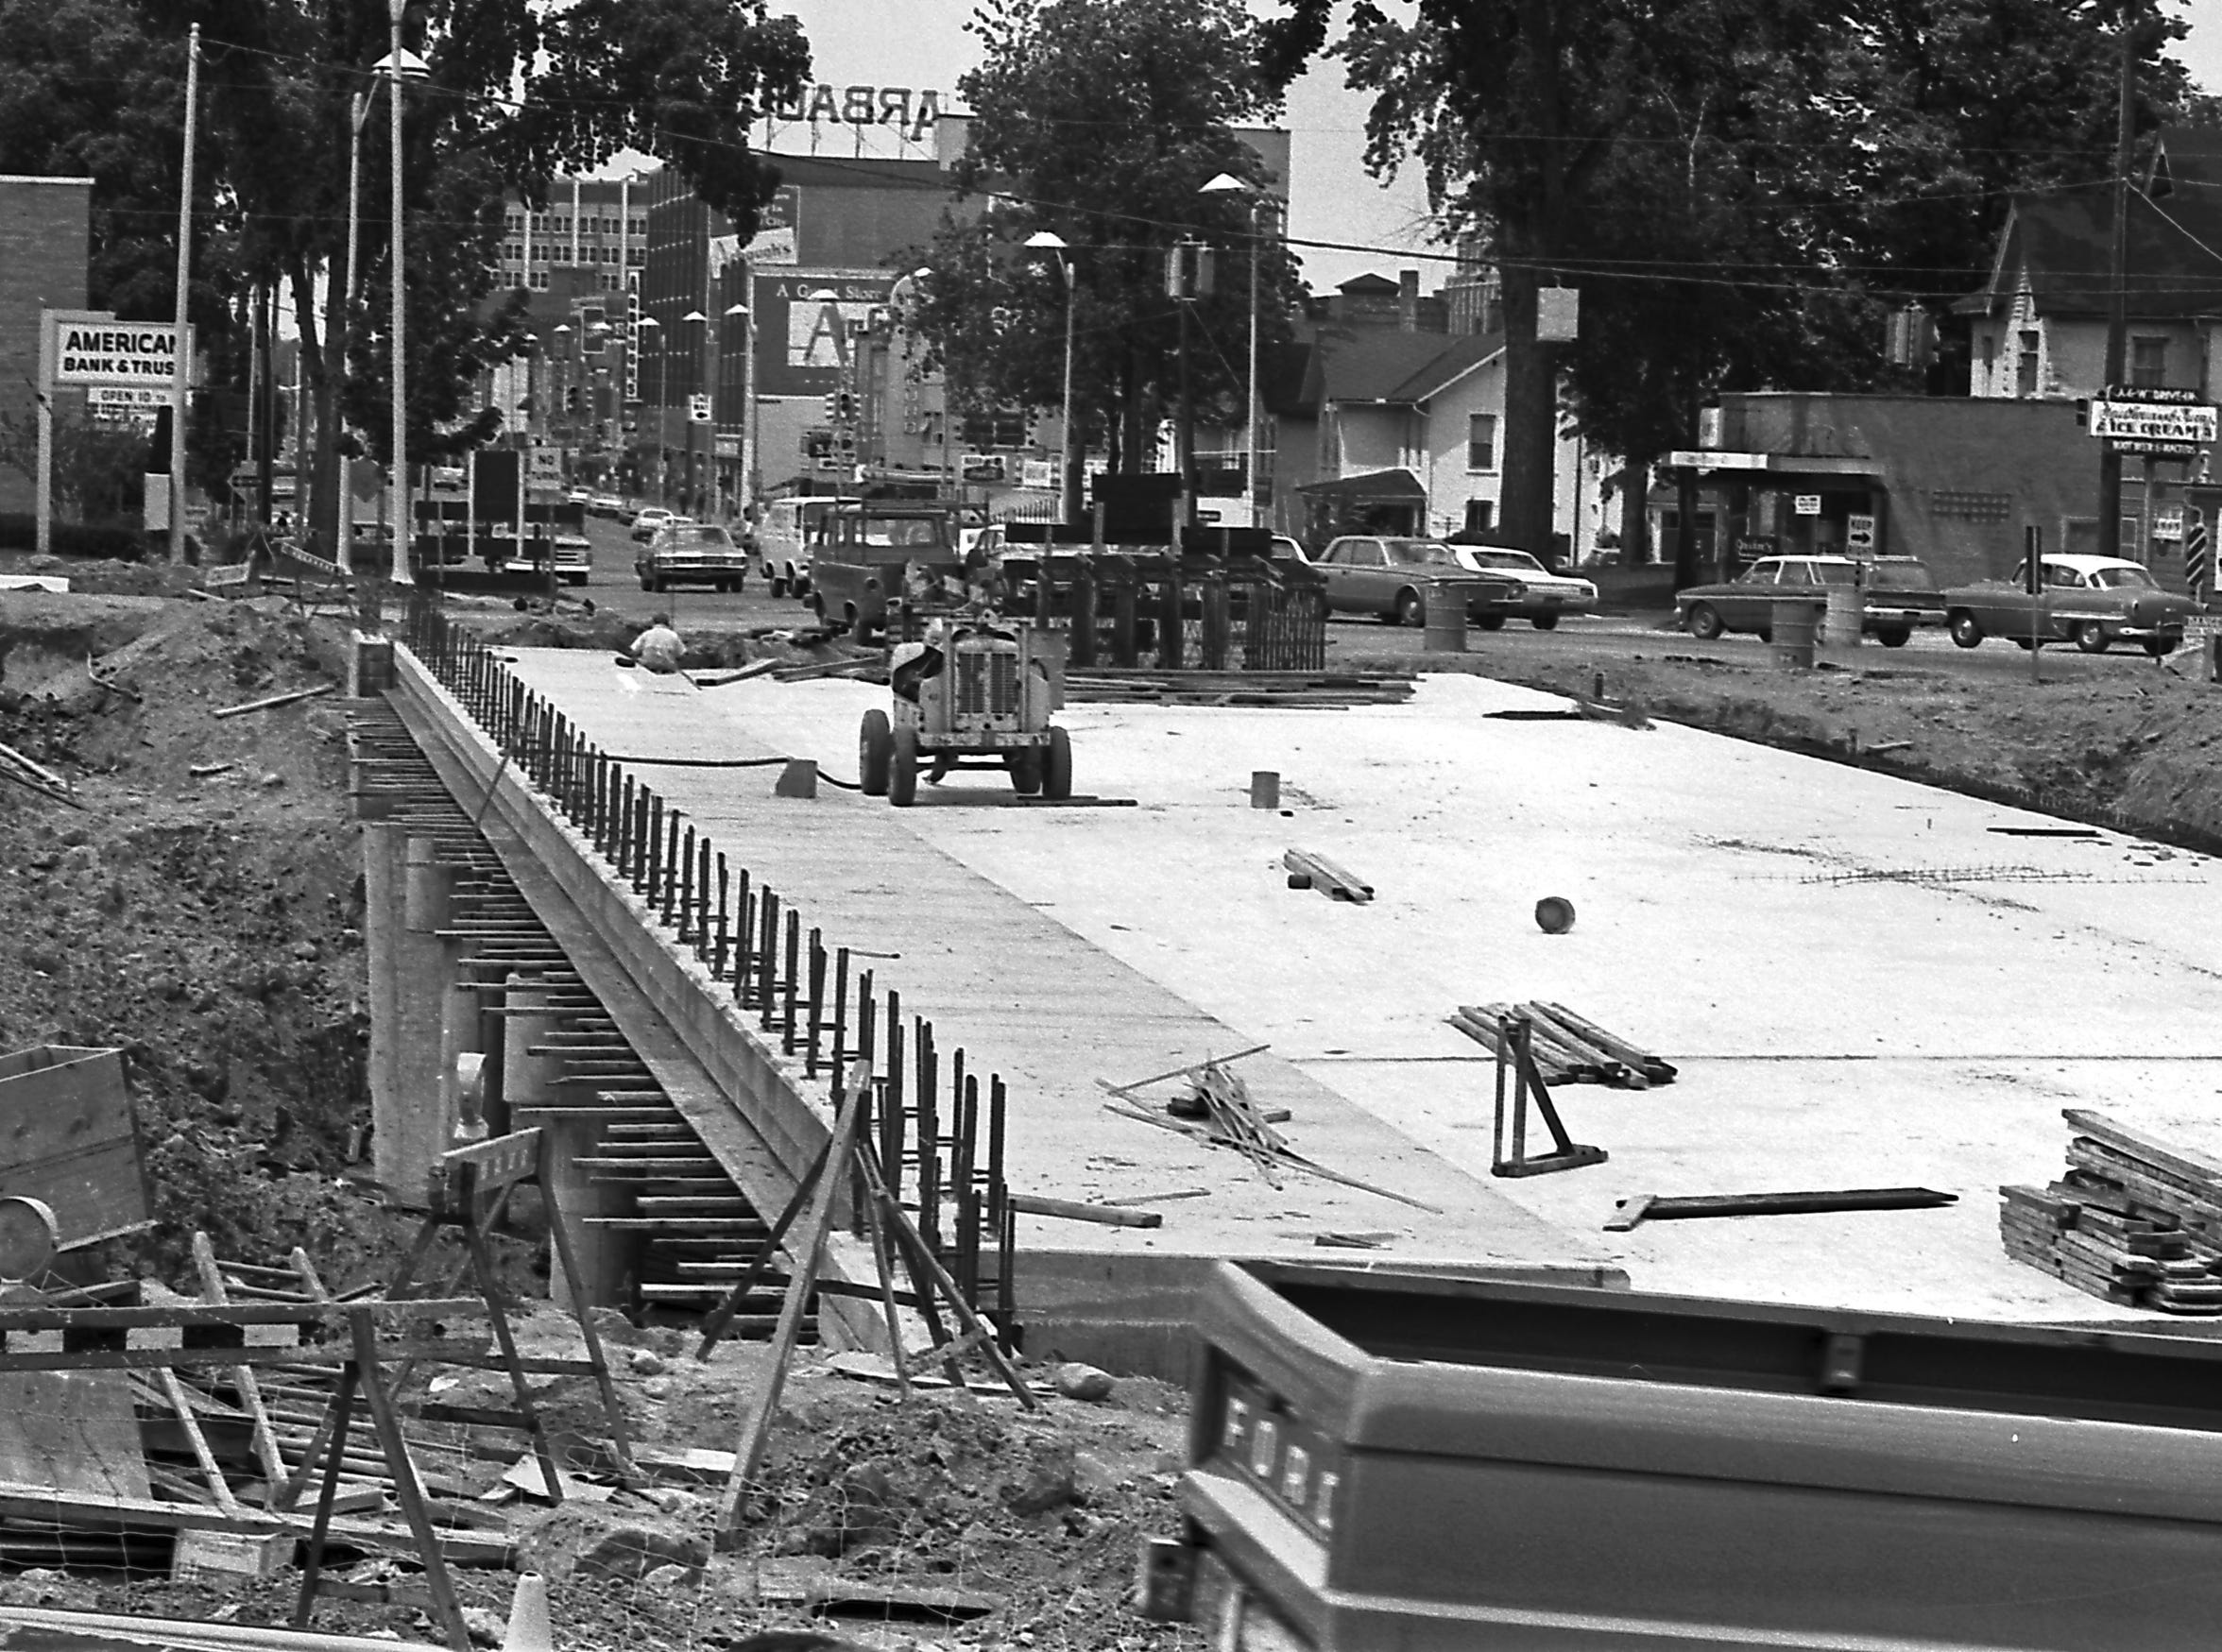 The Washington Avenue bridge takes shape in June 1967, one of several bridges to span the expressway that runs below ground level for some distance.